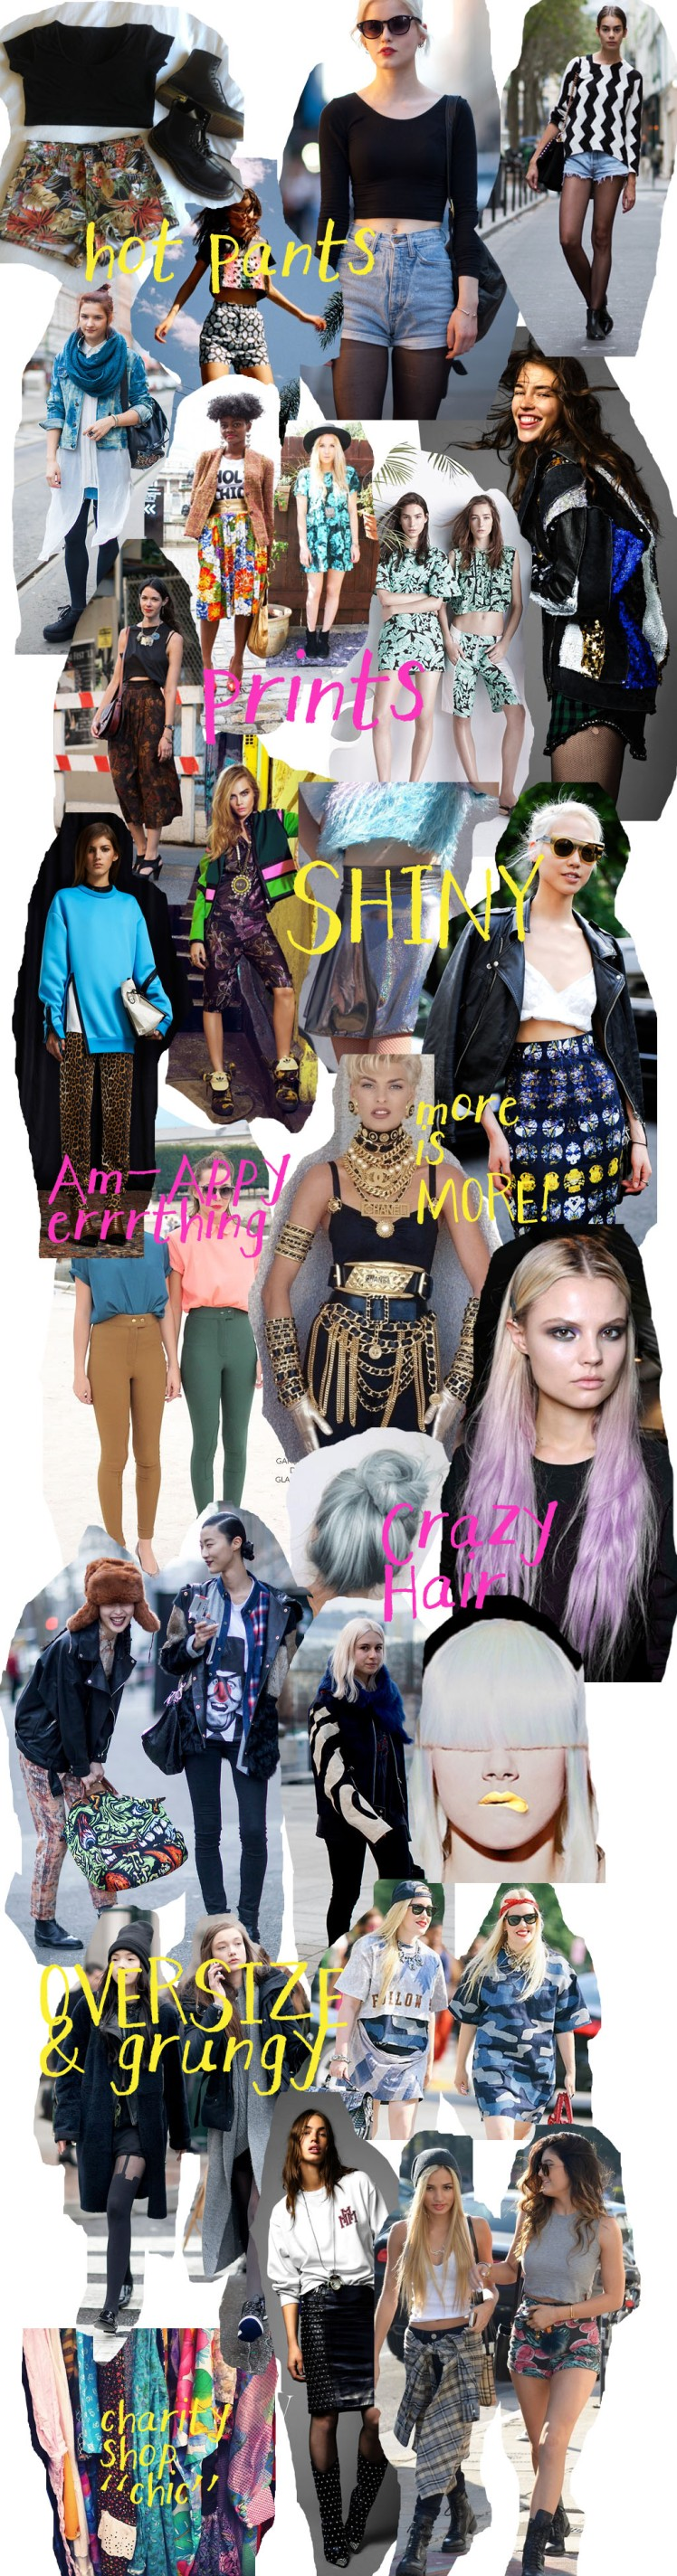 denim cutoffs, dip dye hair, american apparel, leopard print, print, fashion, versace, chains, grunge, oversize,